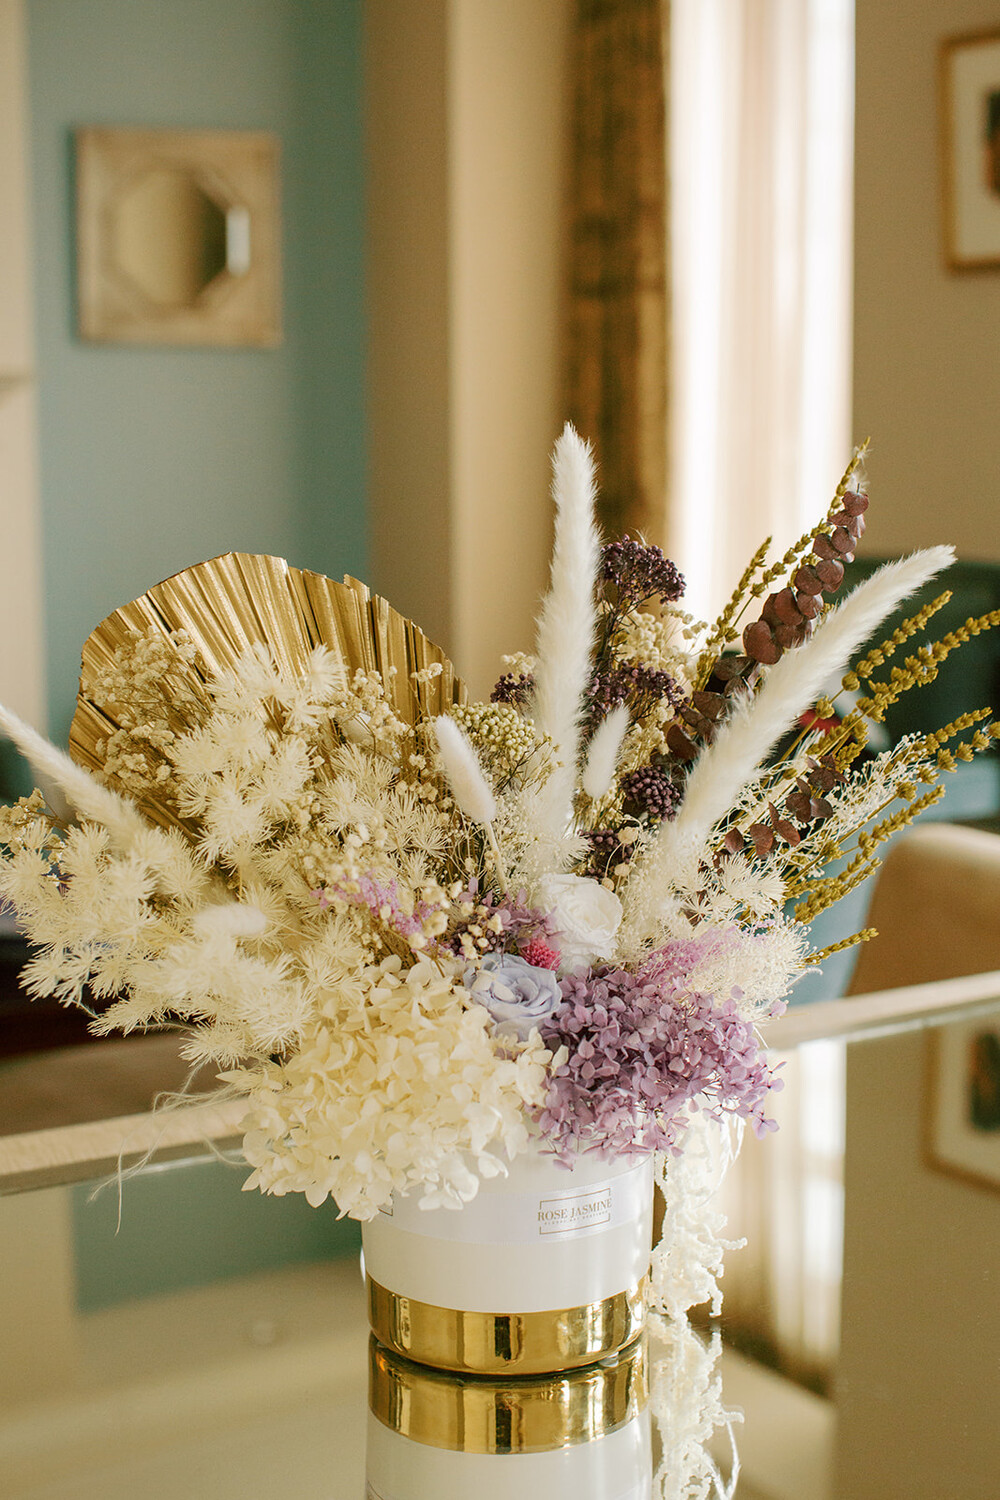 Forever Lasting Bouquet (Dried And Preserved Mixed Flowers)